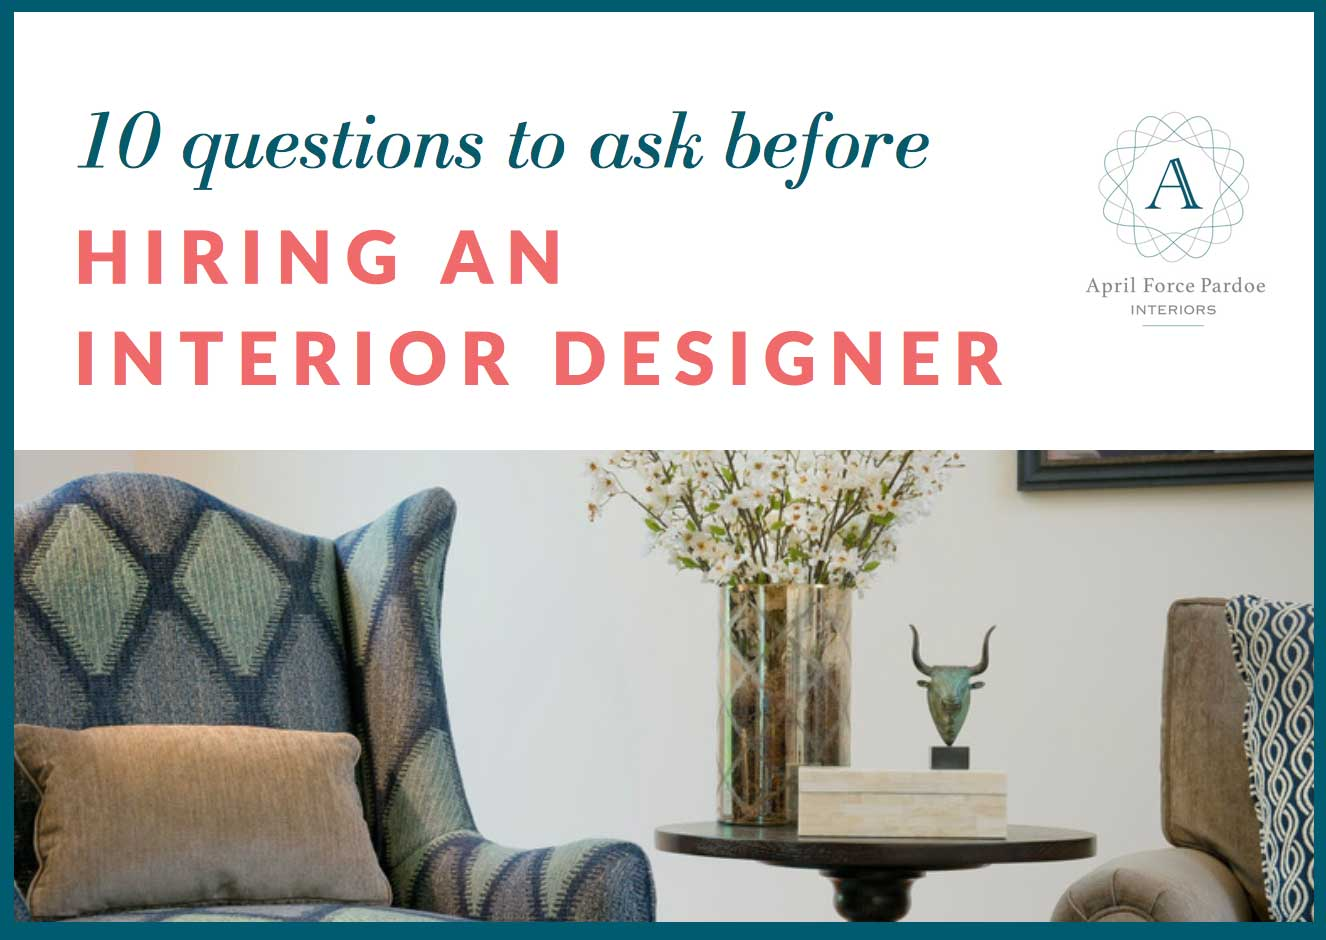 Free Gift - 10 questions to ask before hiring an interior designer